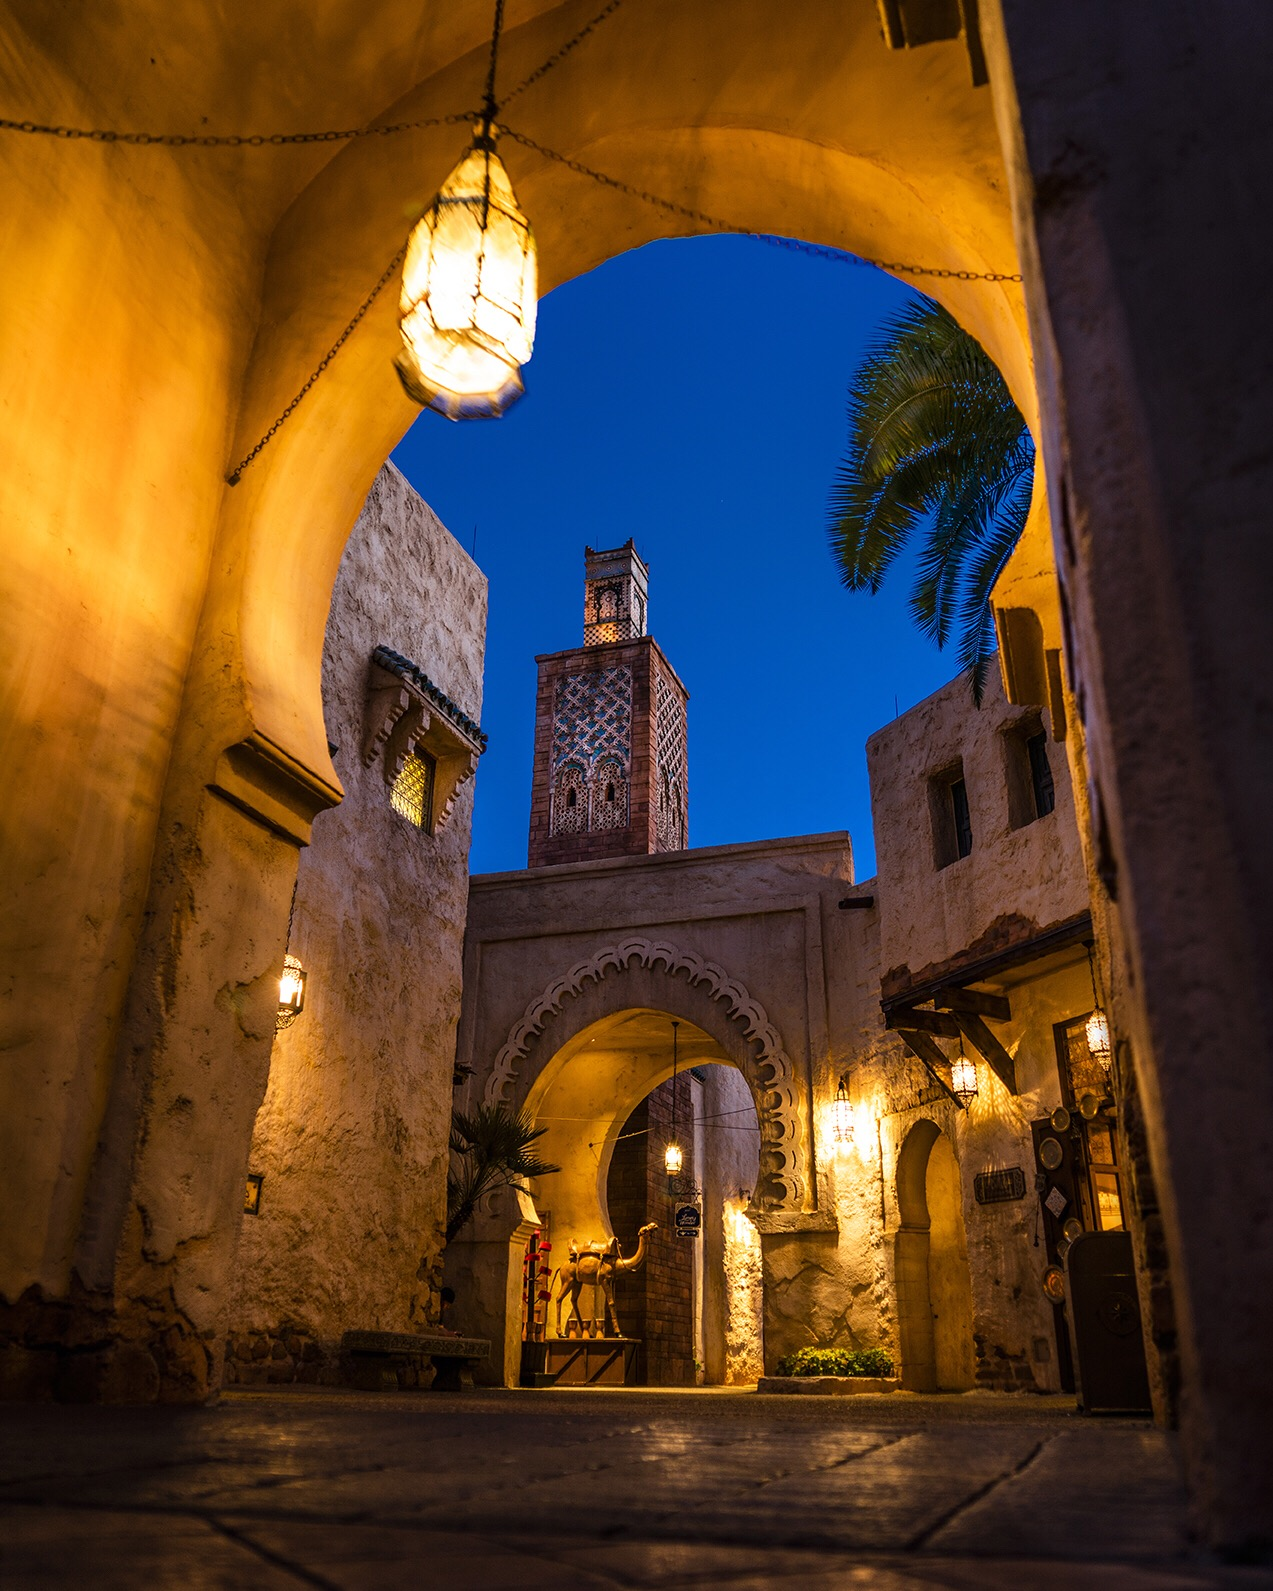 Pictured: Morocco Pavilion at Epcot during 2018 Worldwide Photowalk. Taken with Platypod Ultra for camera support. By Mike Wewerka